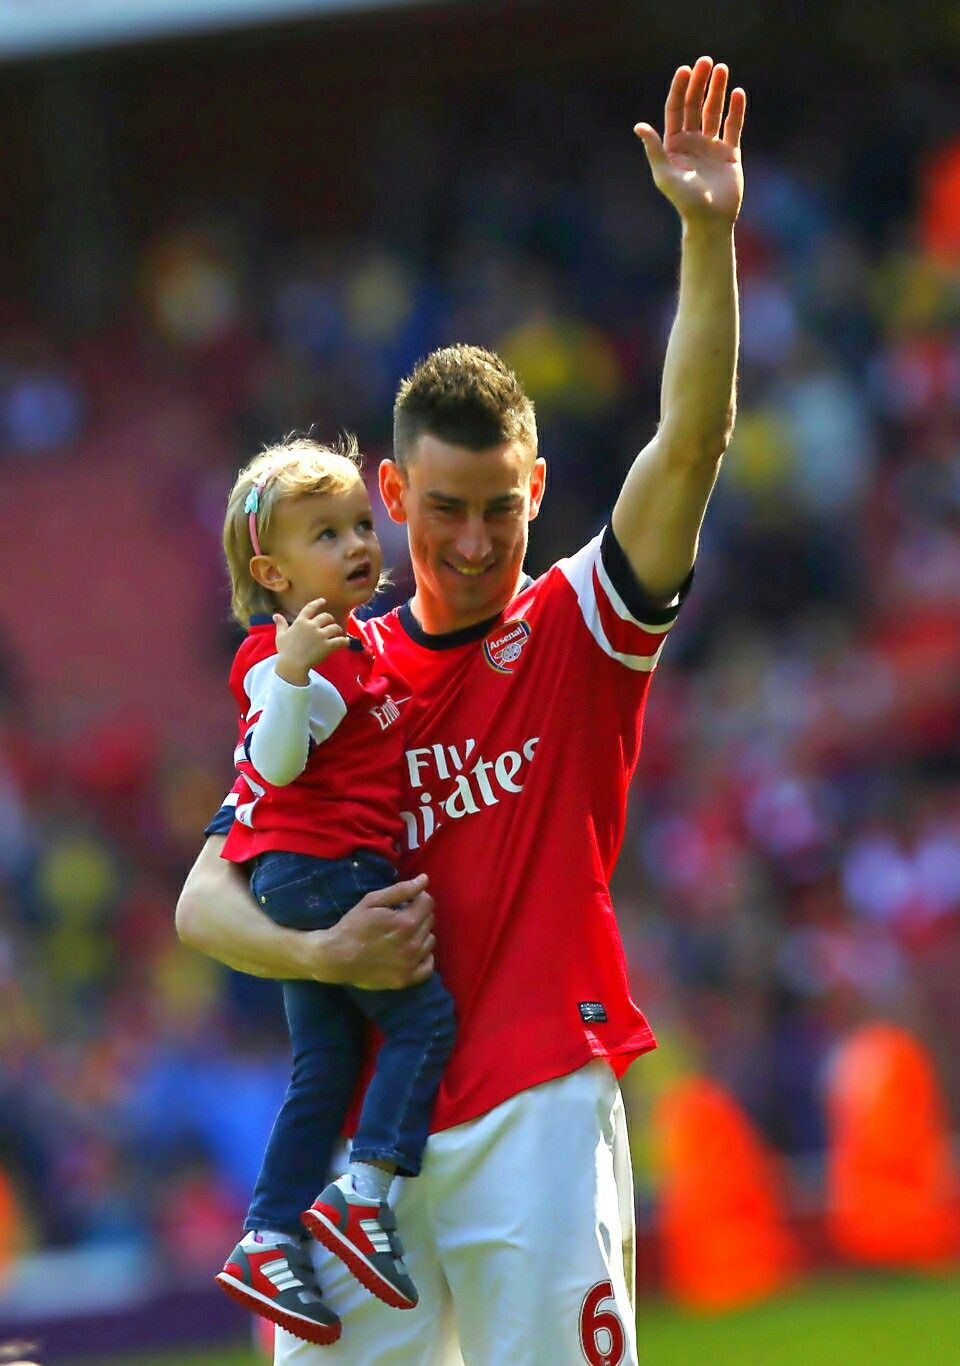 Laurent Koscielny Football Babes Pinterest